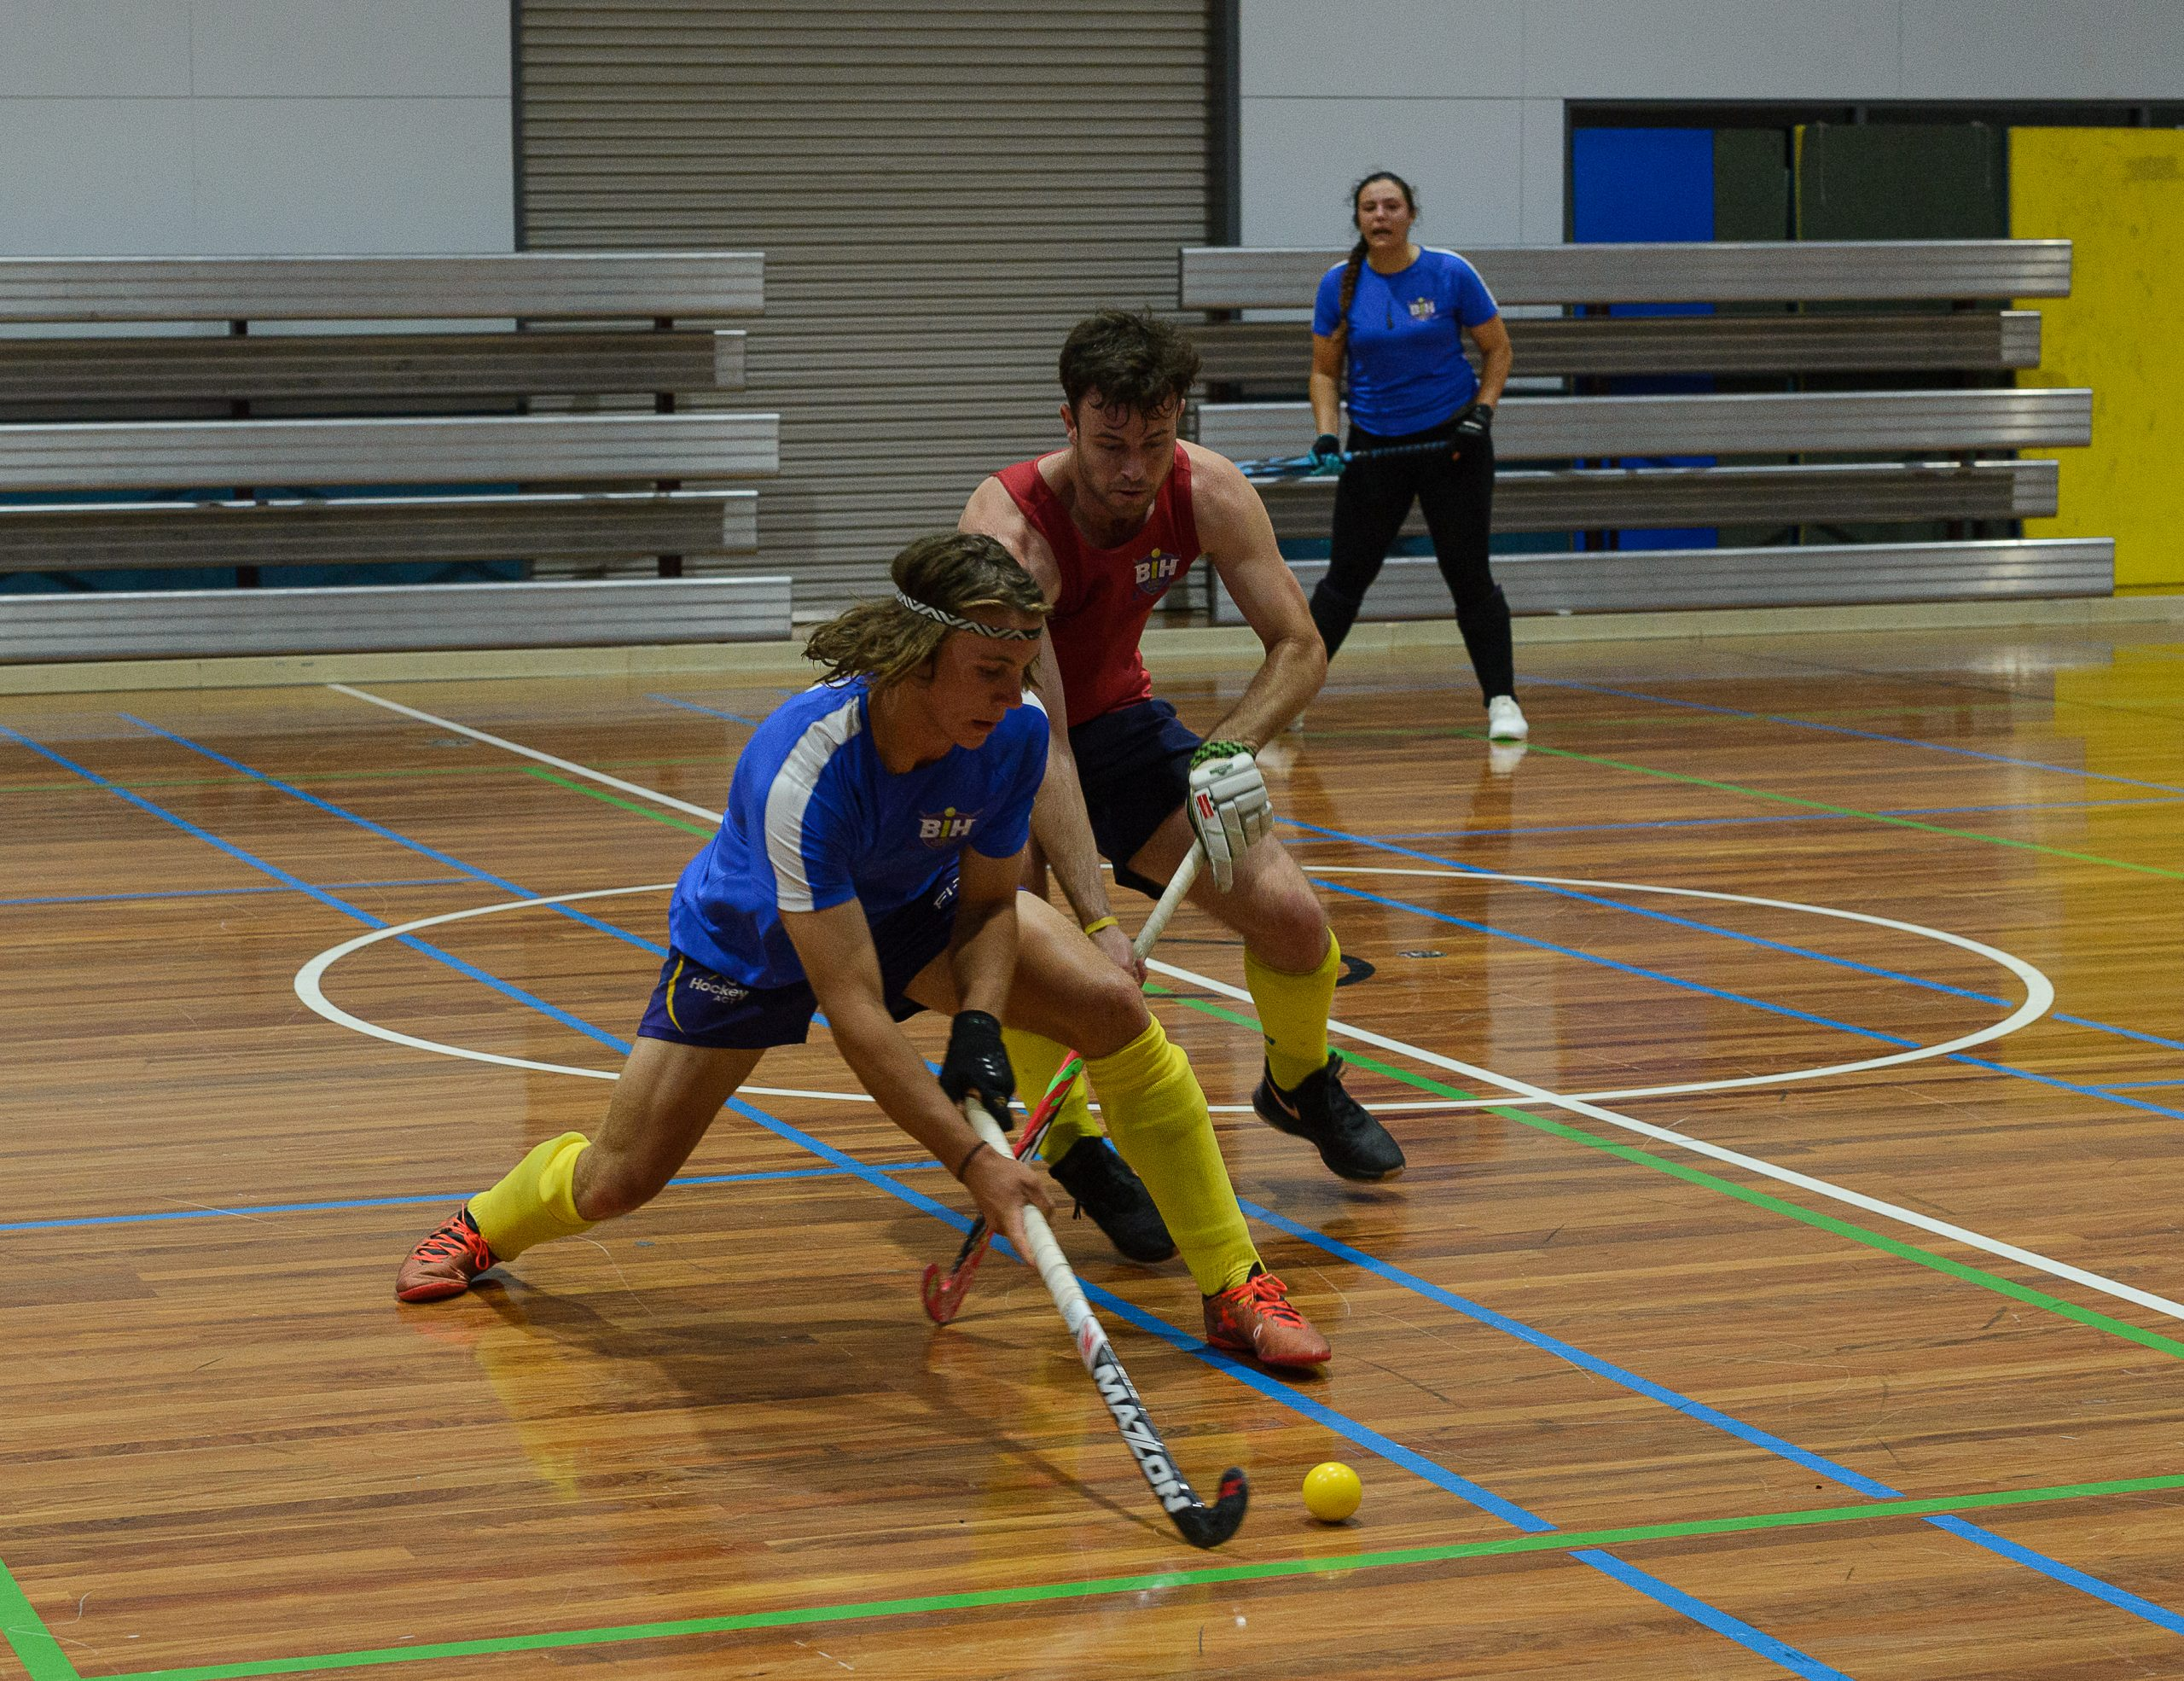 Indoor Hockey Albury Wodonga